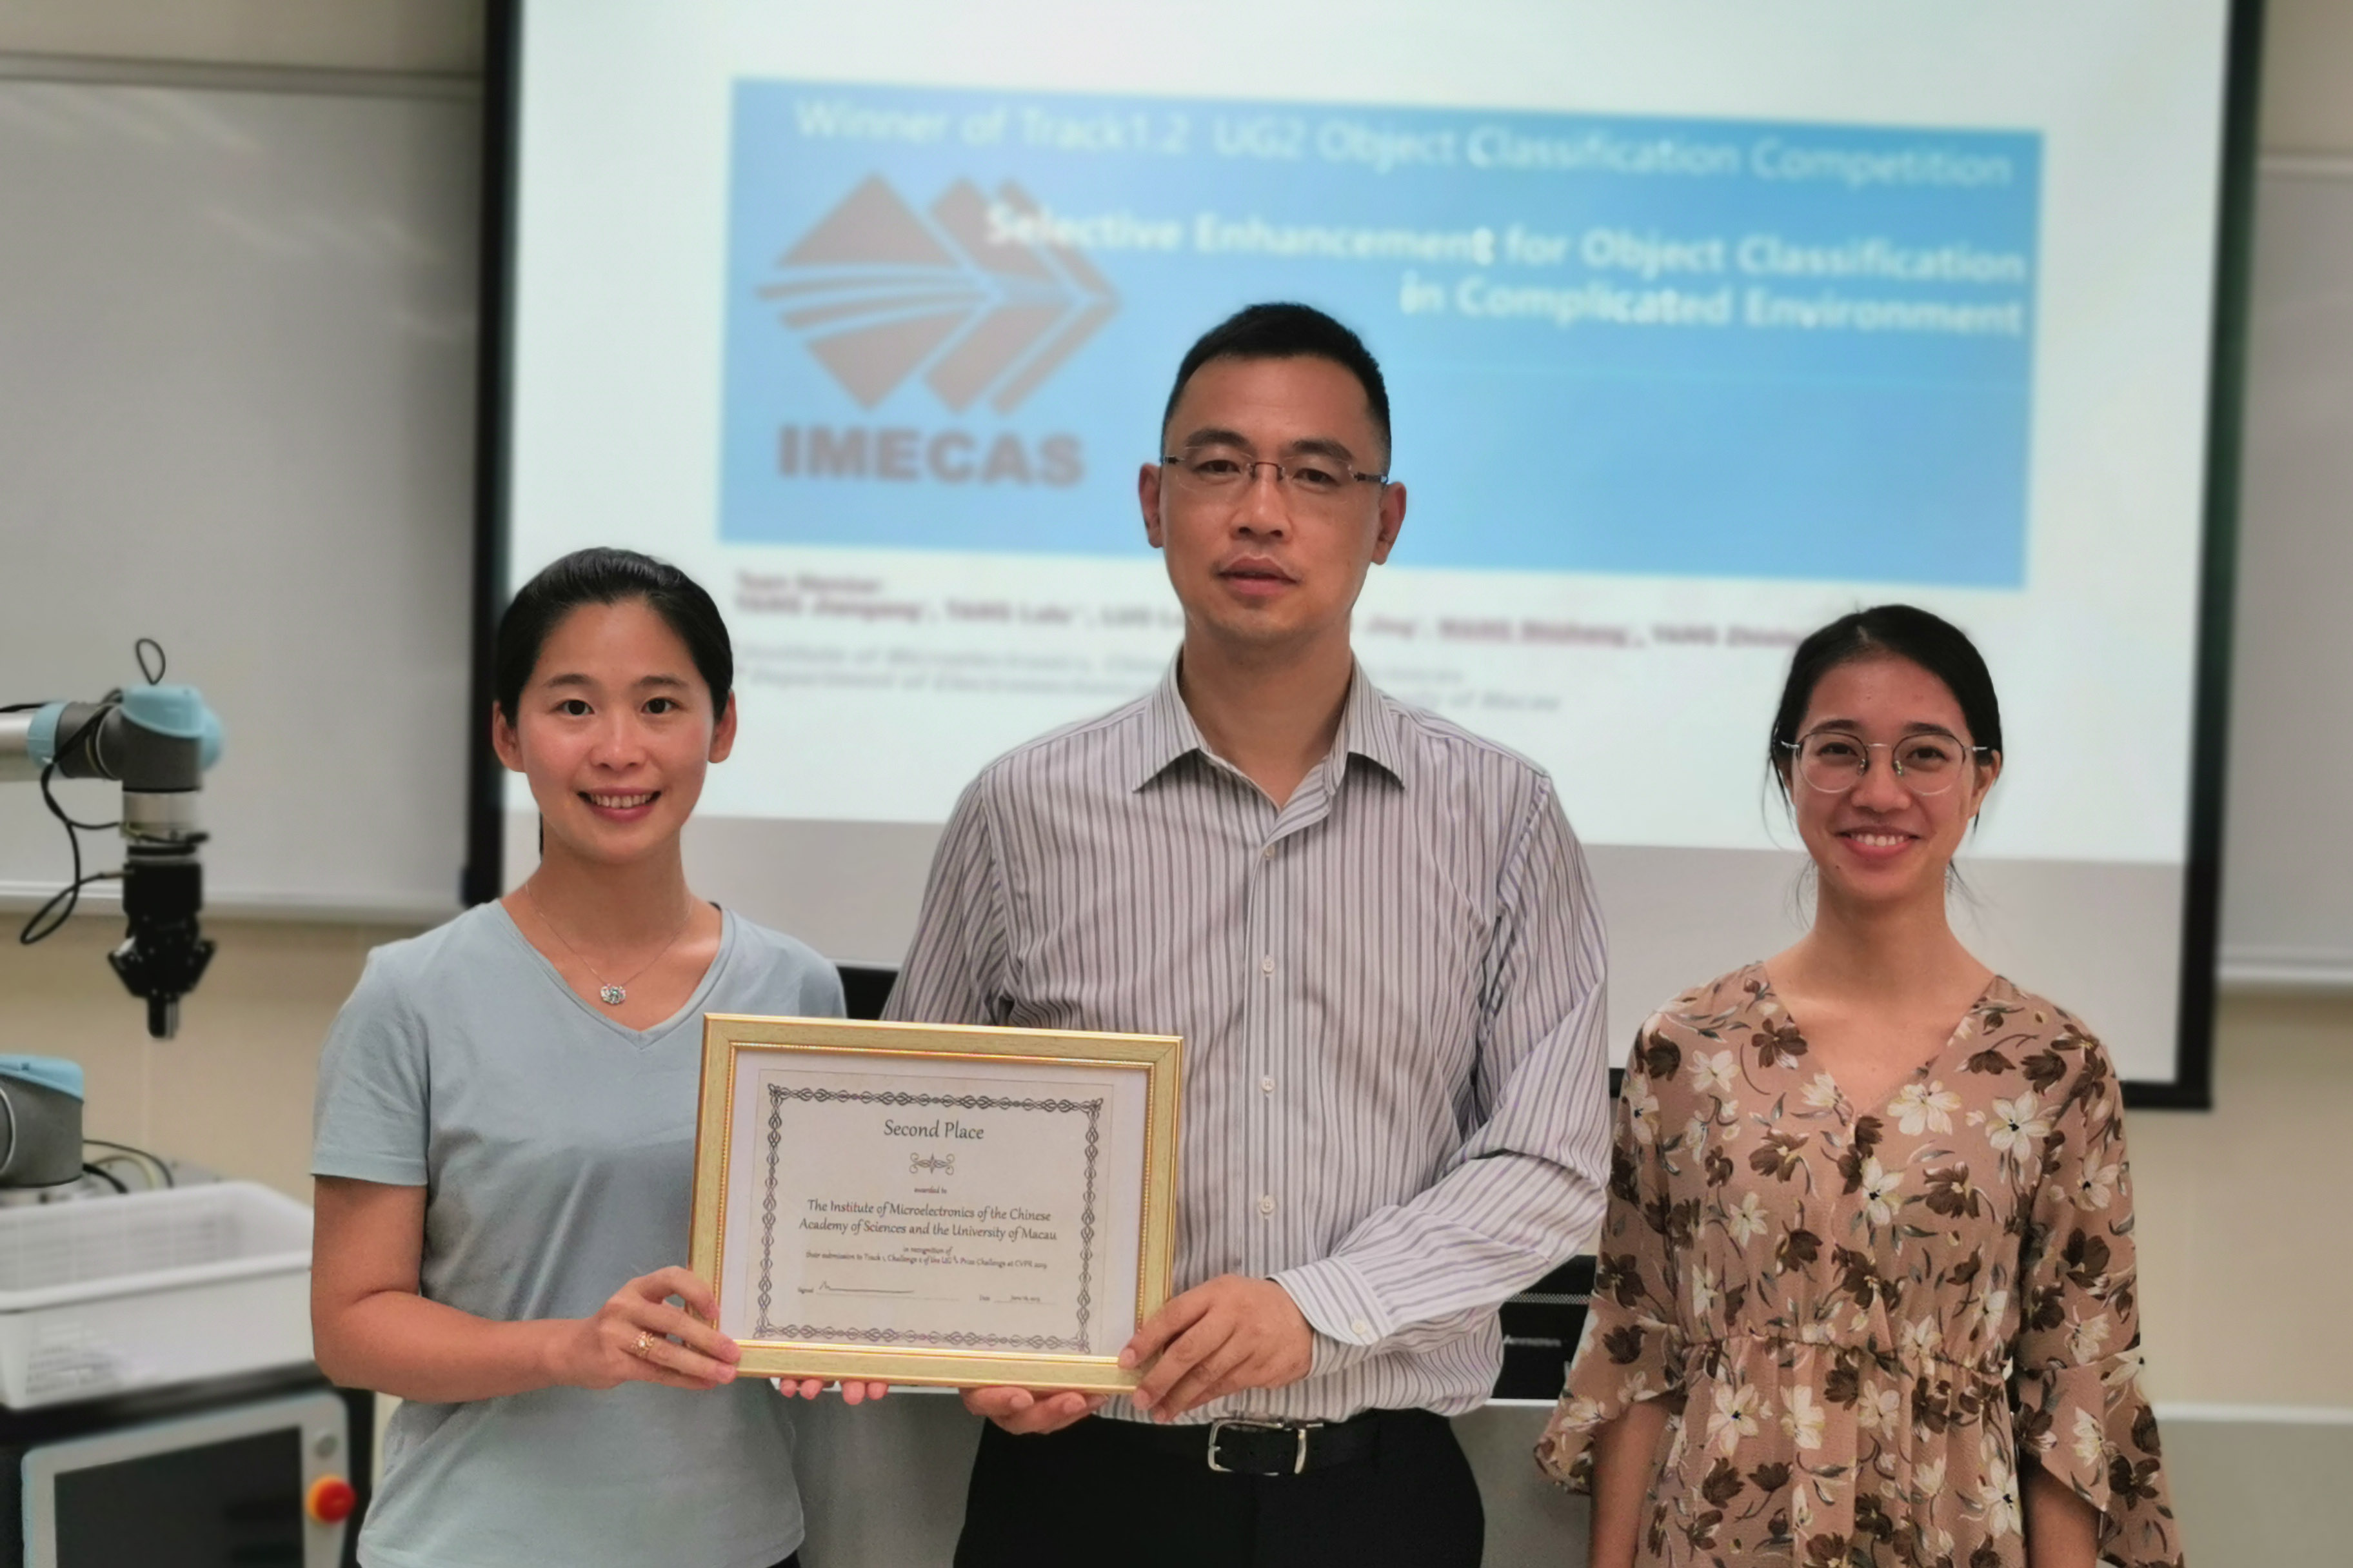 A team from UM and the CAS wins a second prize in a global computer vision algorithm challenge.